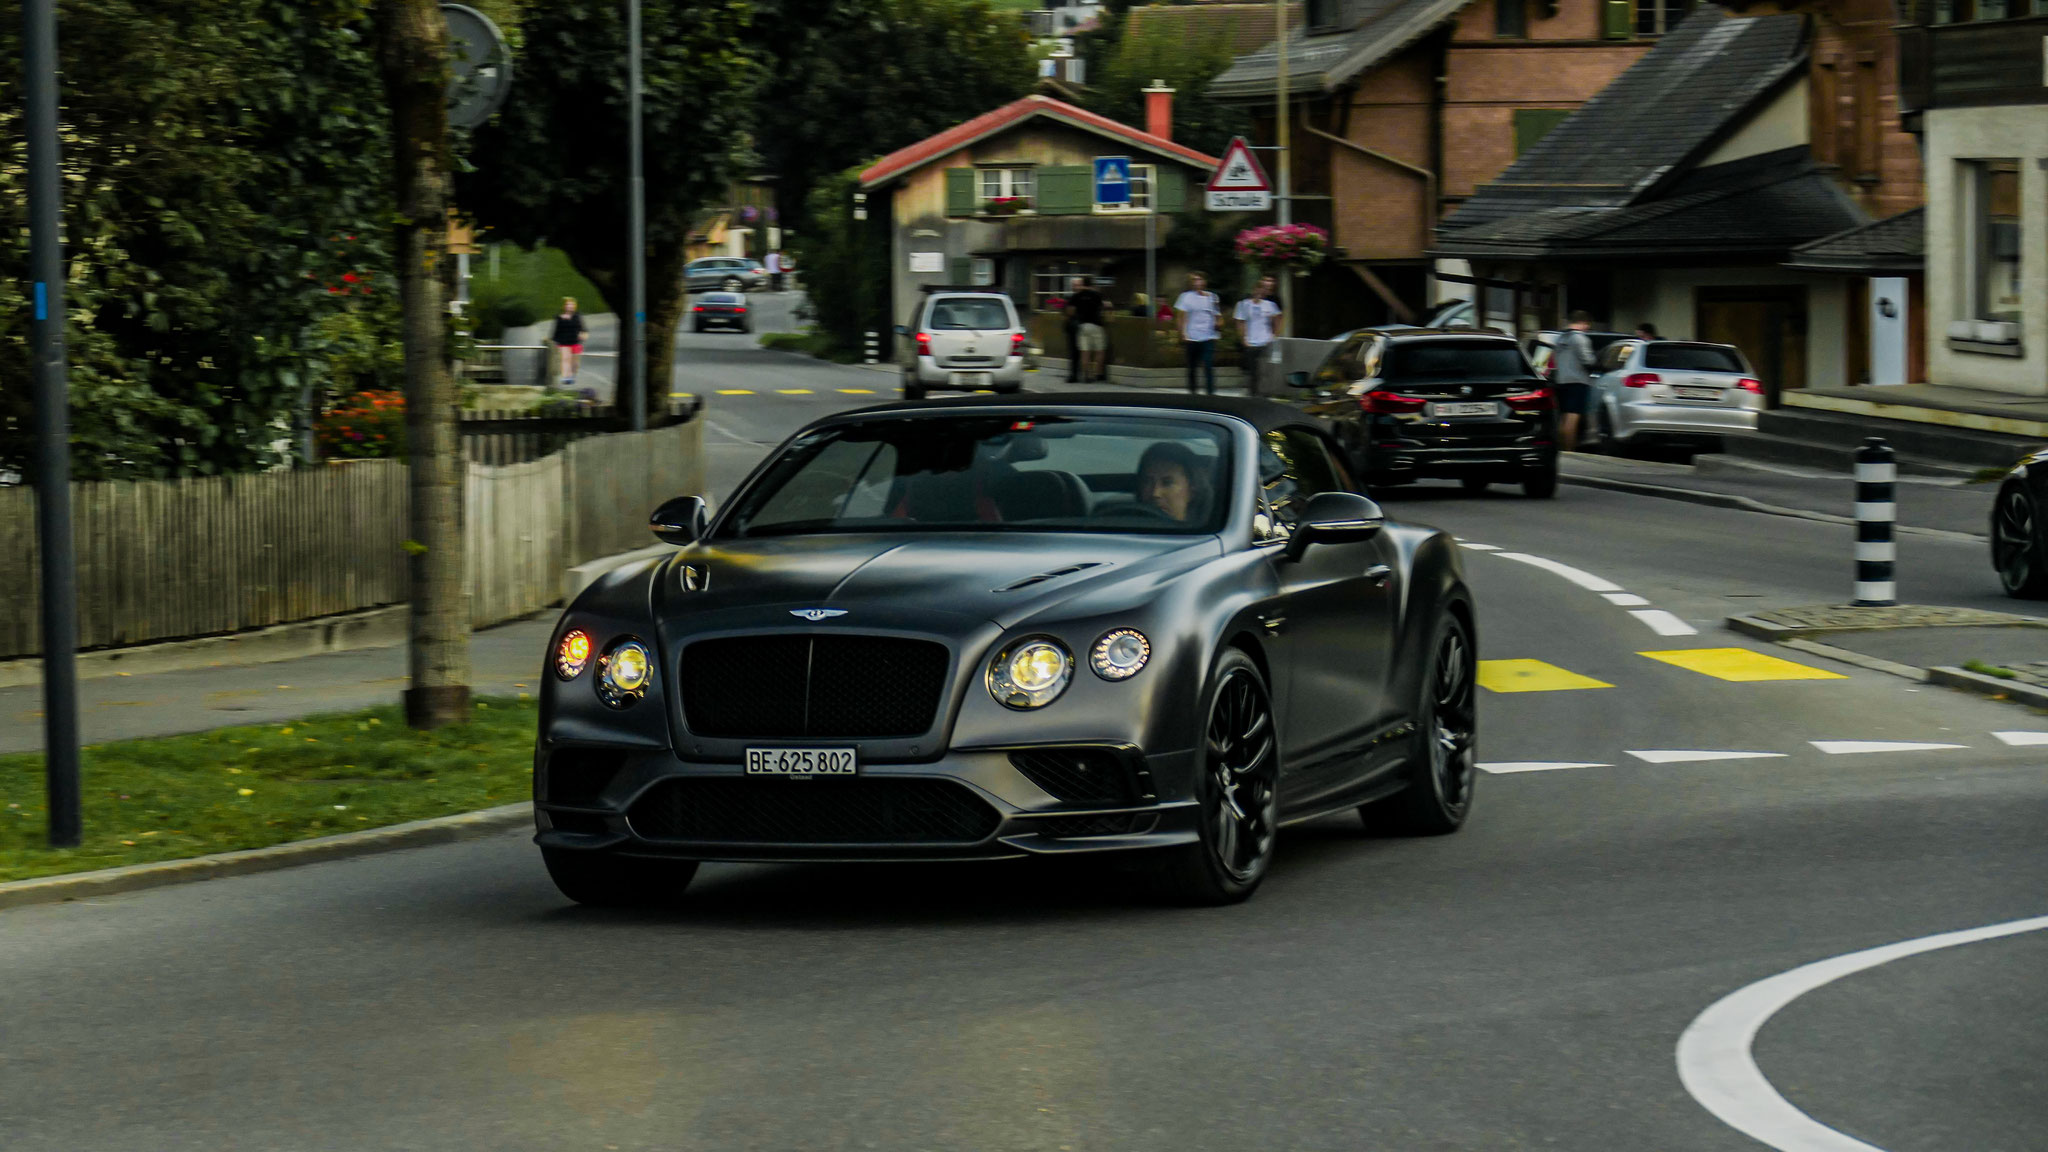 Bentley Continental GTC  Supersports - BE-625802 (CH)